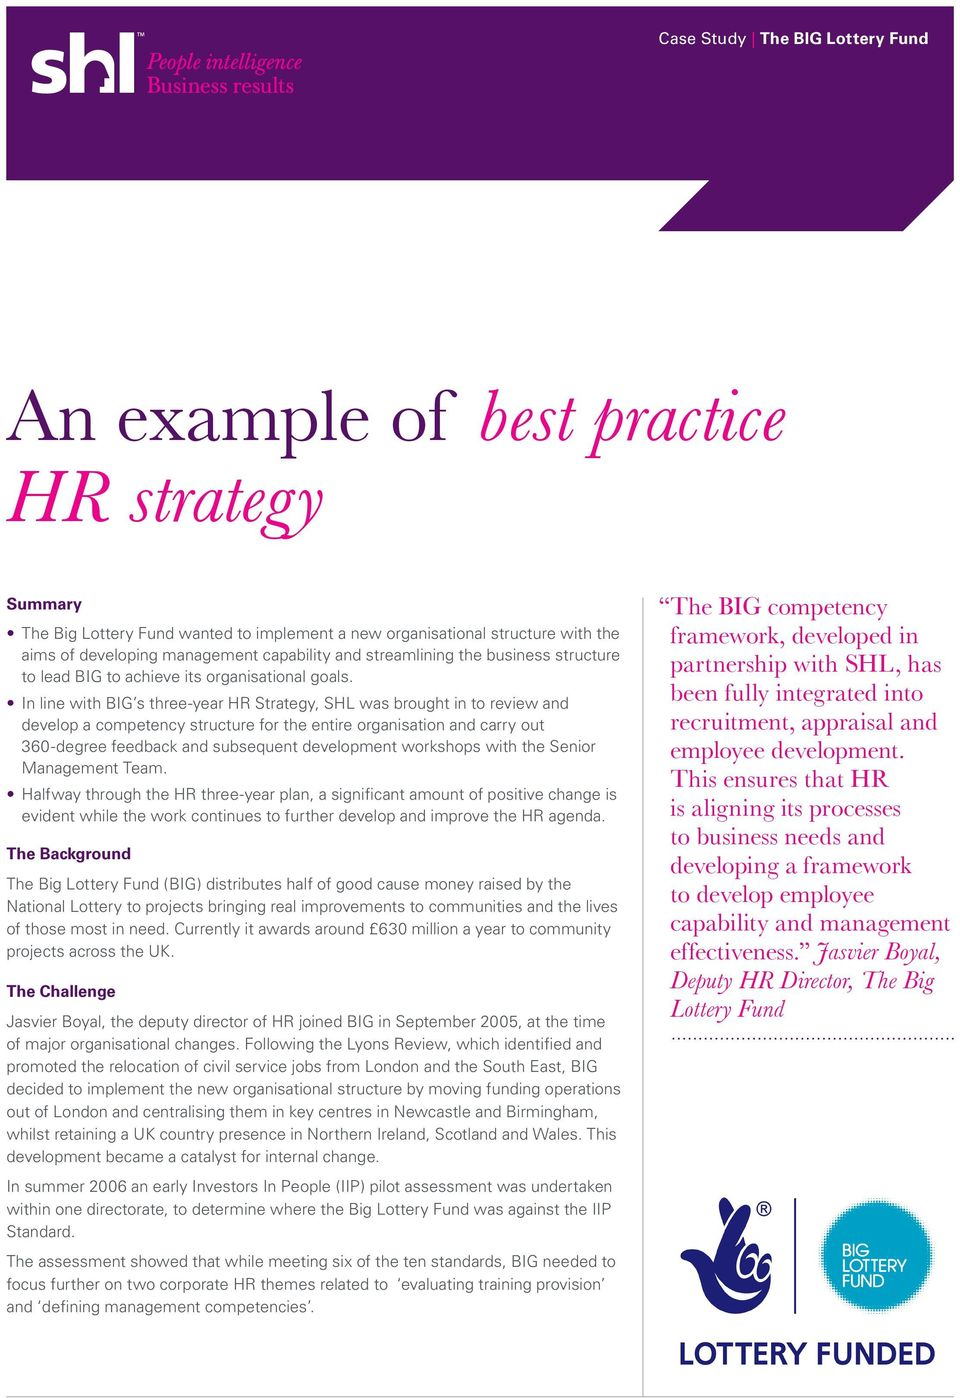 In line with BIG s three-year HR Strategy, SHL was brought in to review and develop a competency structure for the entire organisation and carry out 360-degree feedback and subsequent development